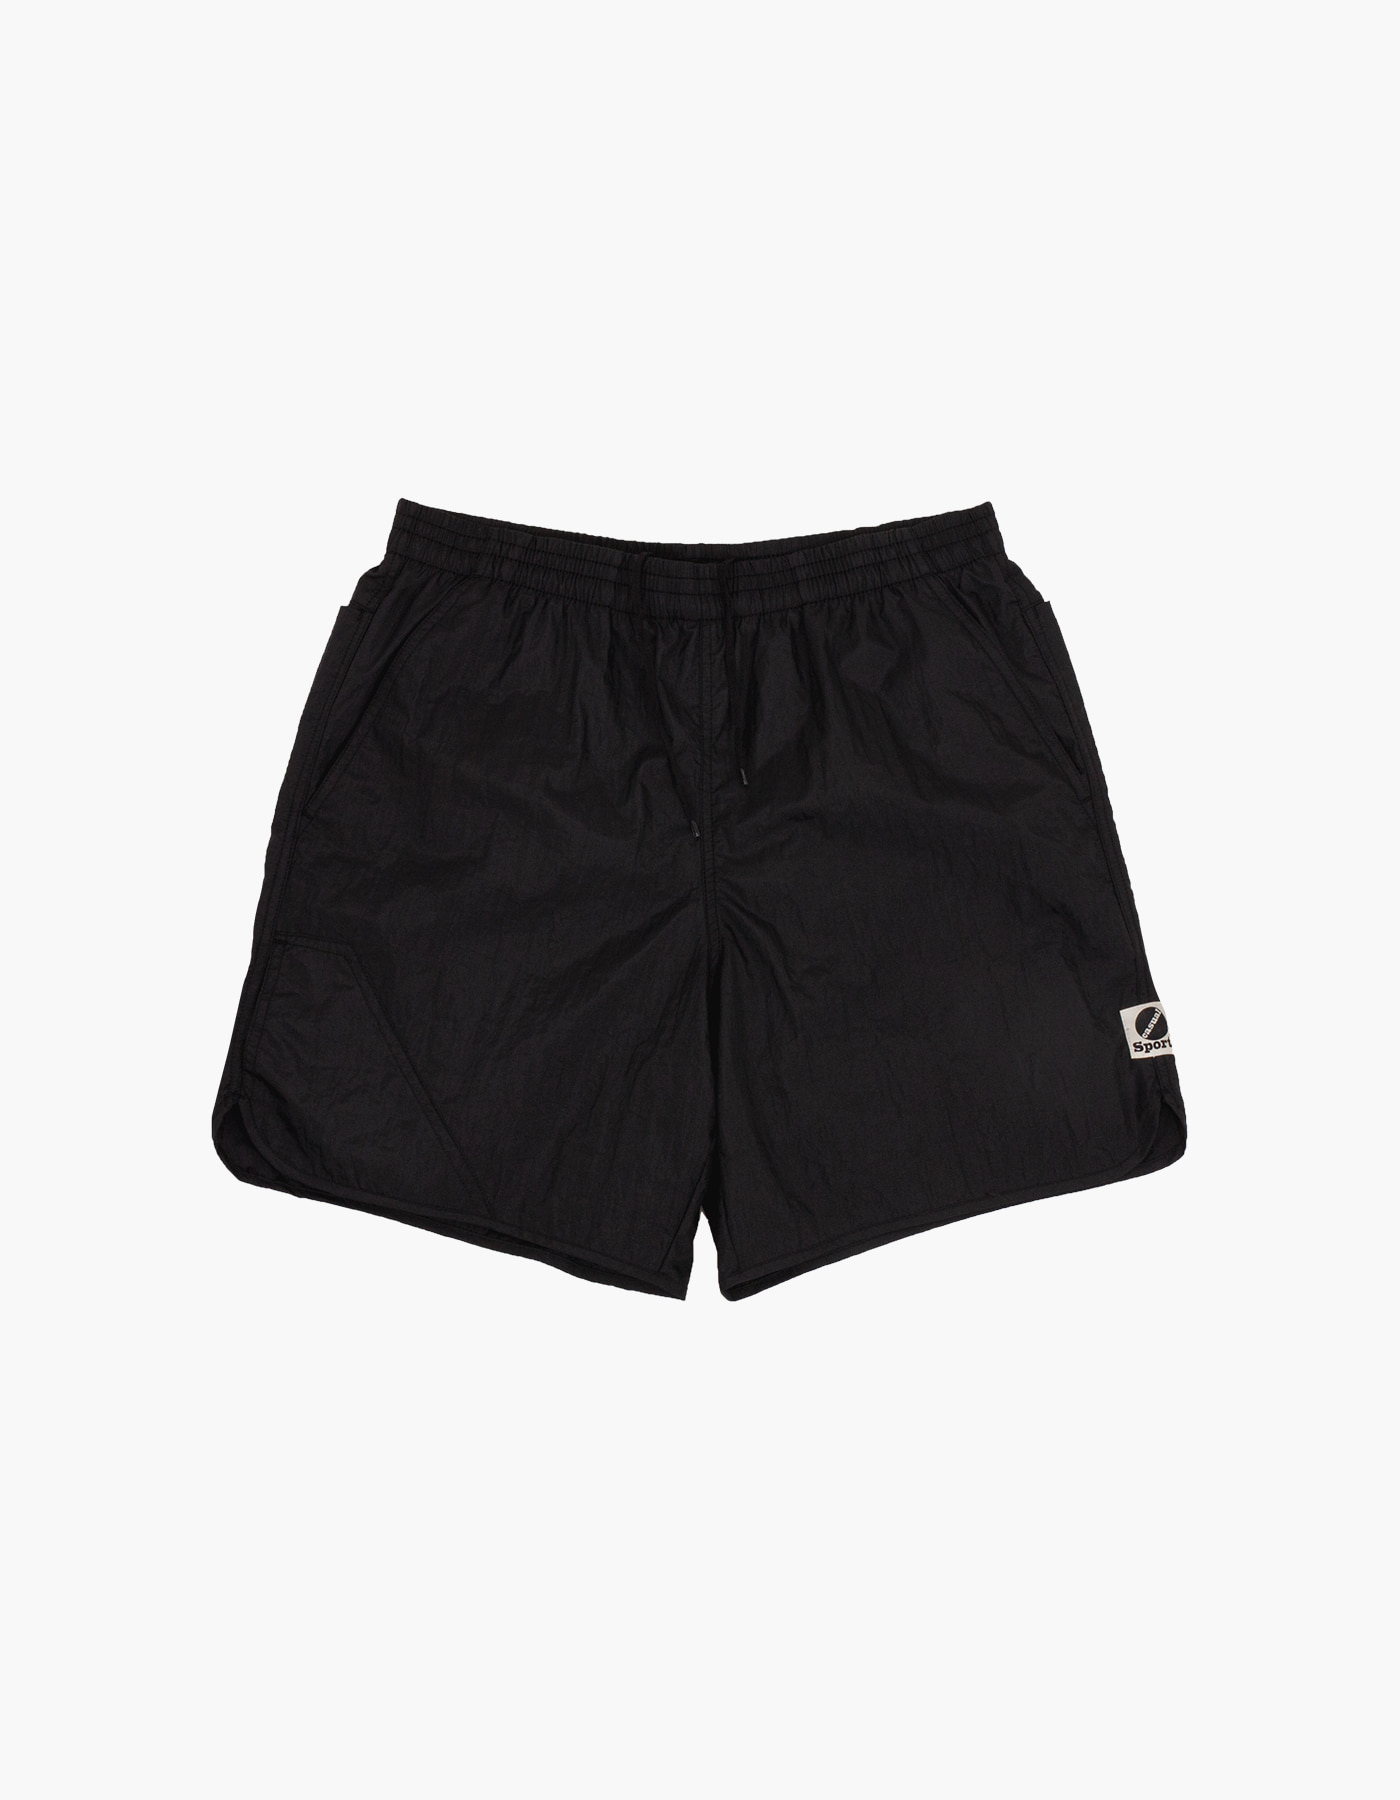 NYLON DIAMOND WASHER SHORTS / BLACK